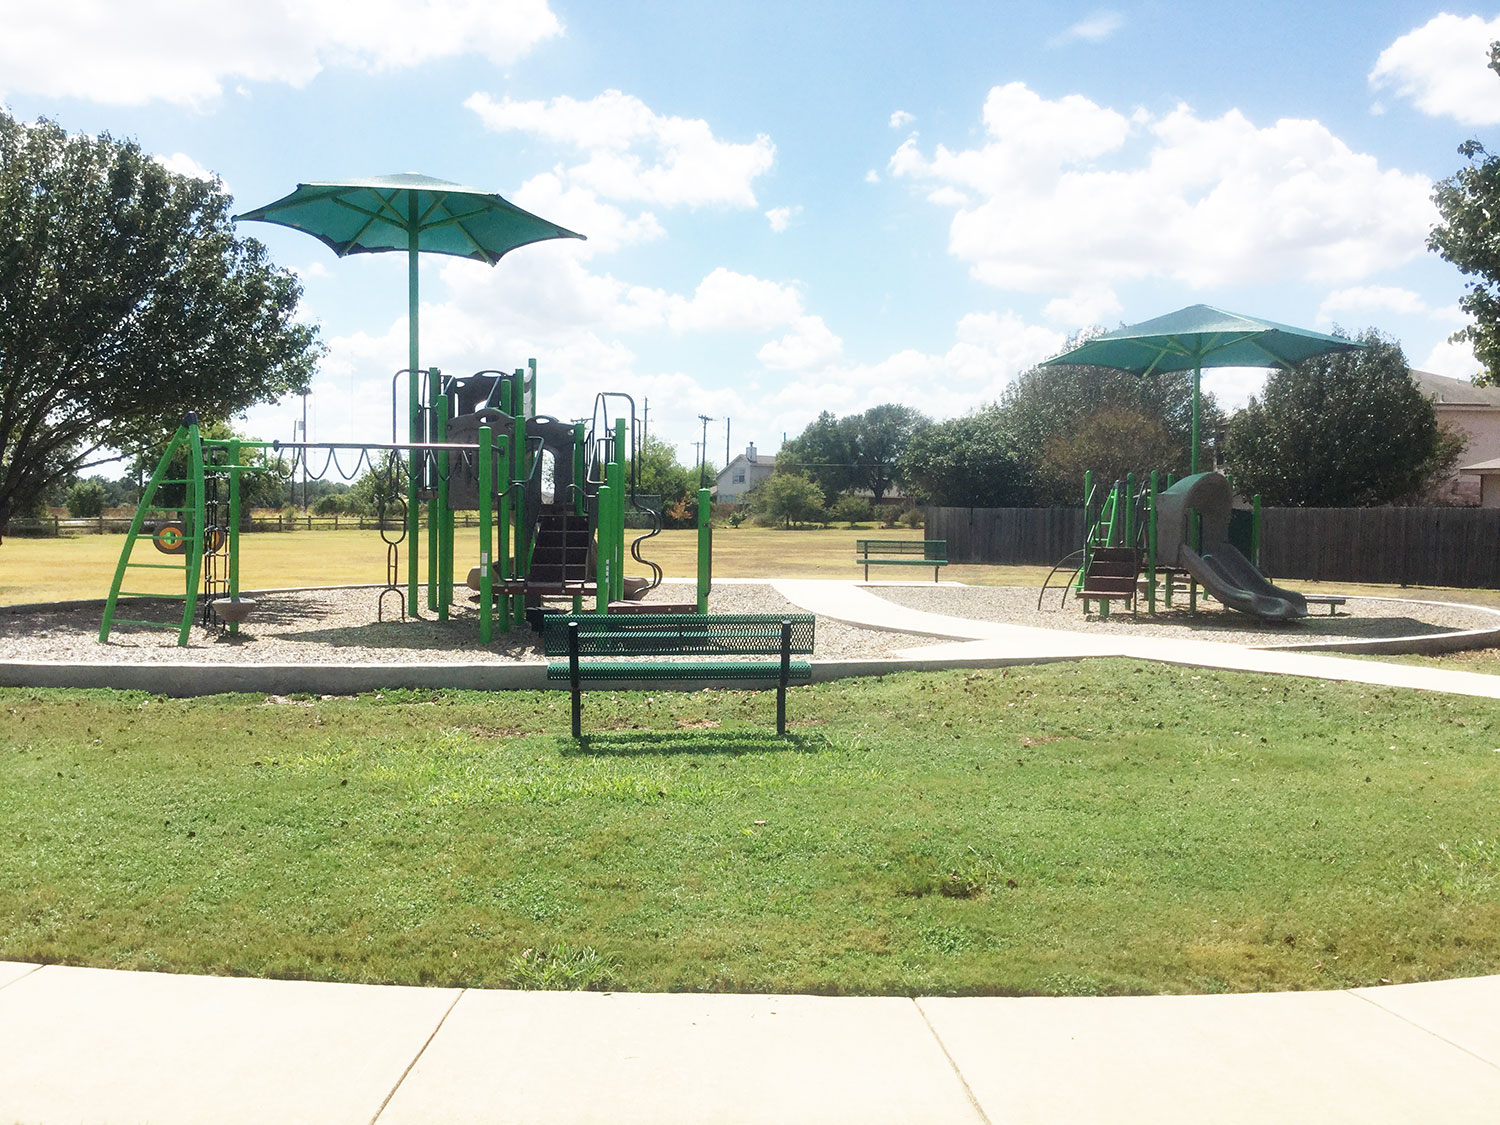 Playscape at Meadows Park in Georgetown, TX